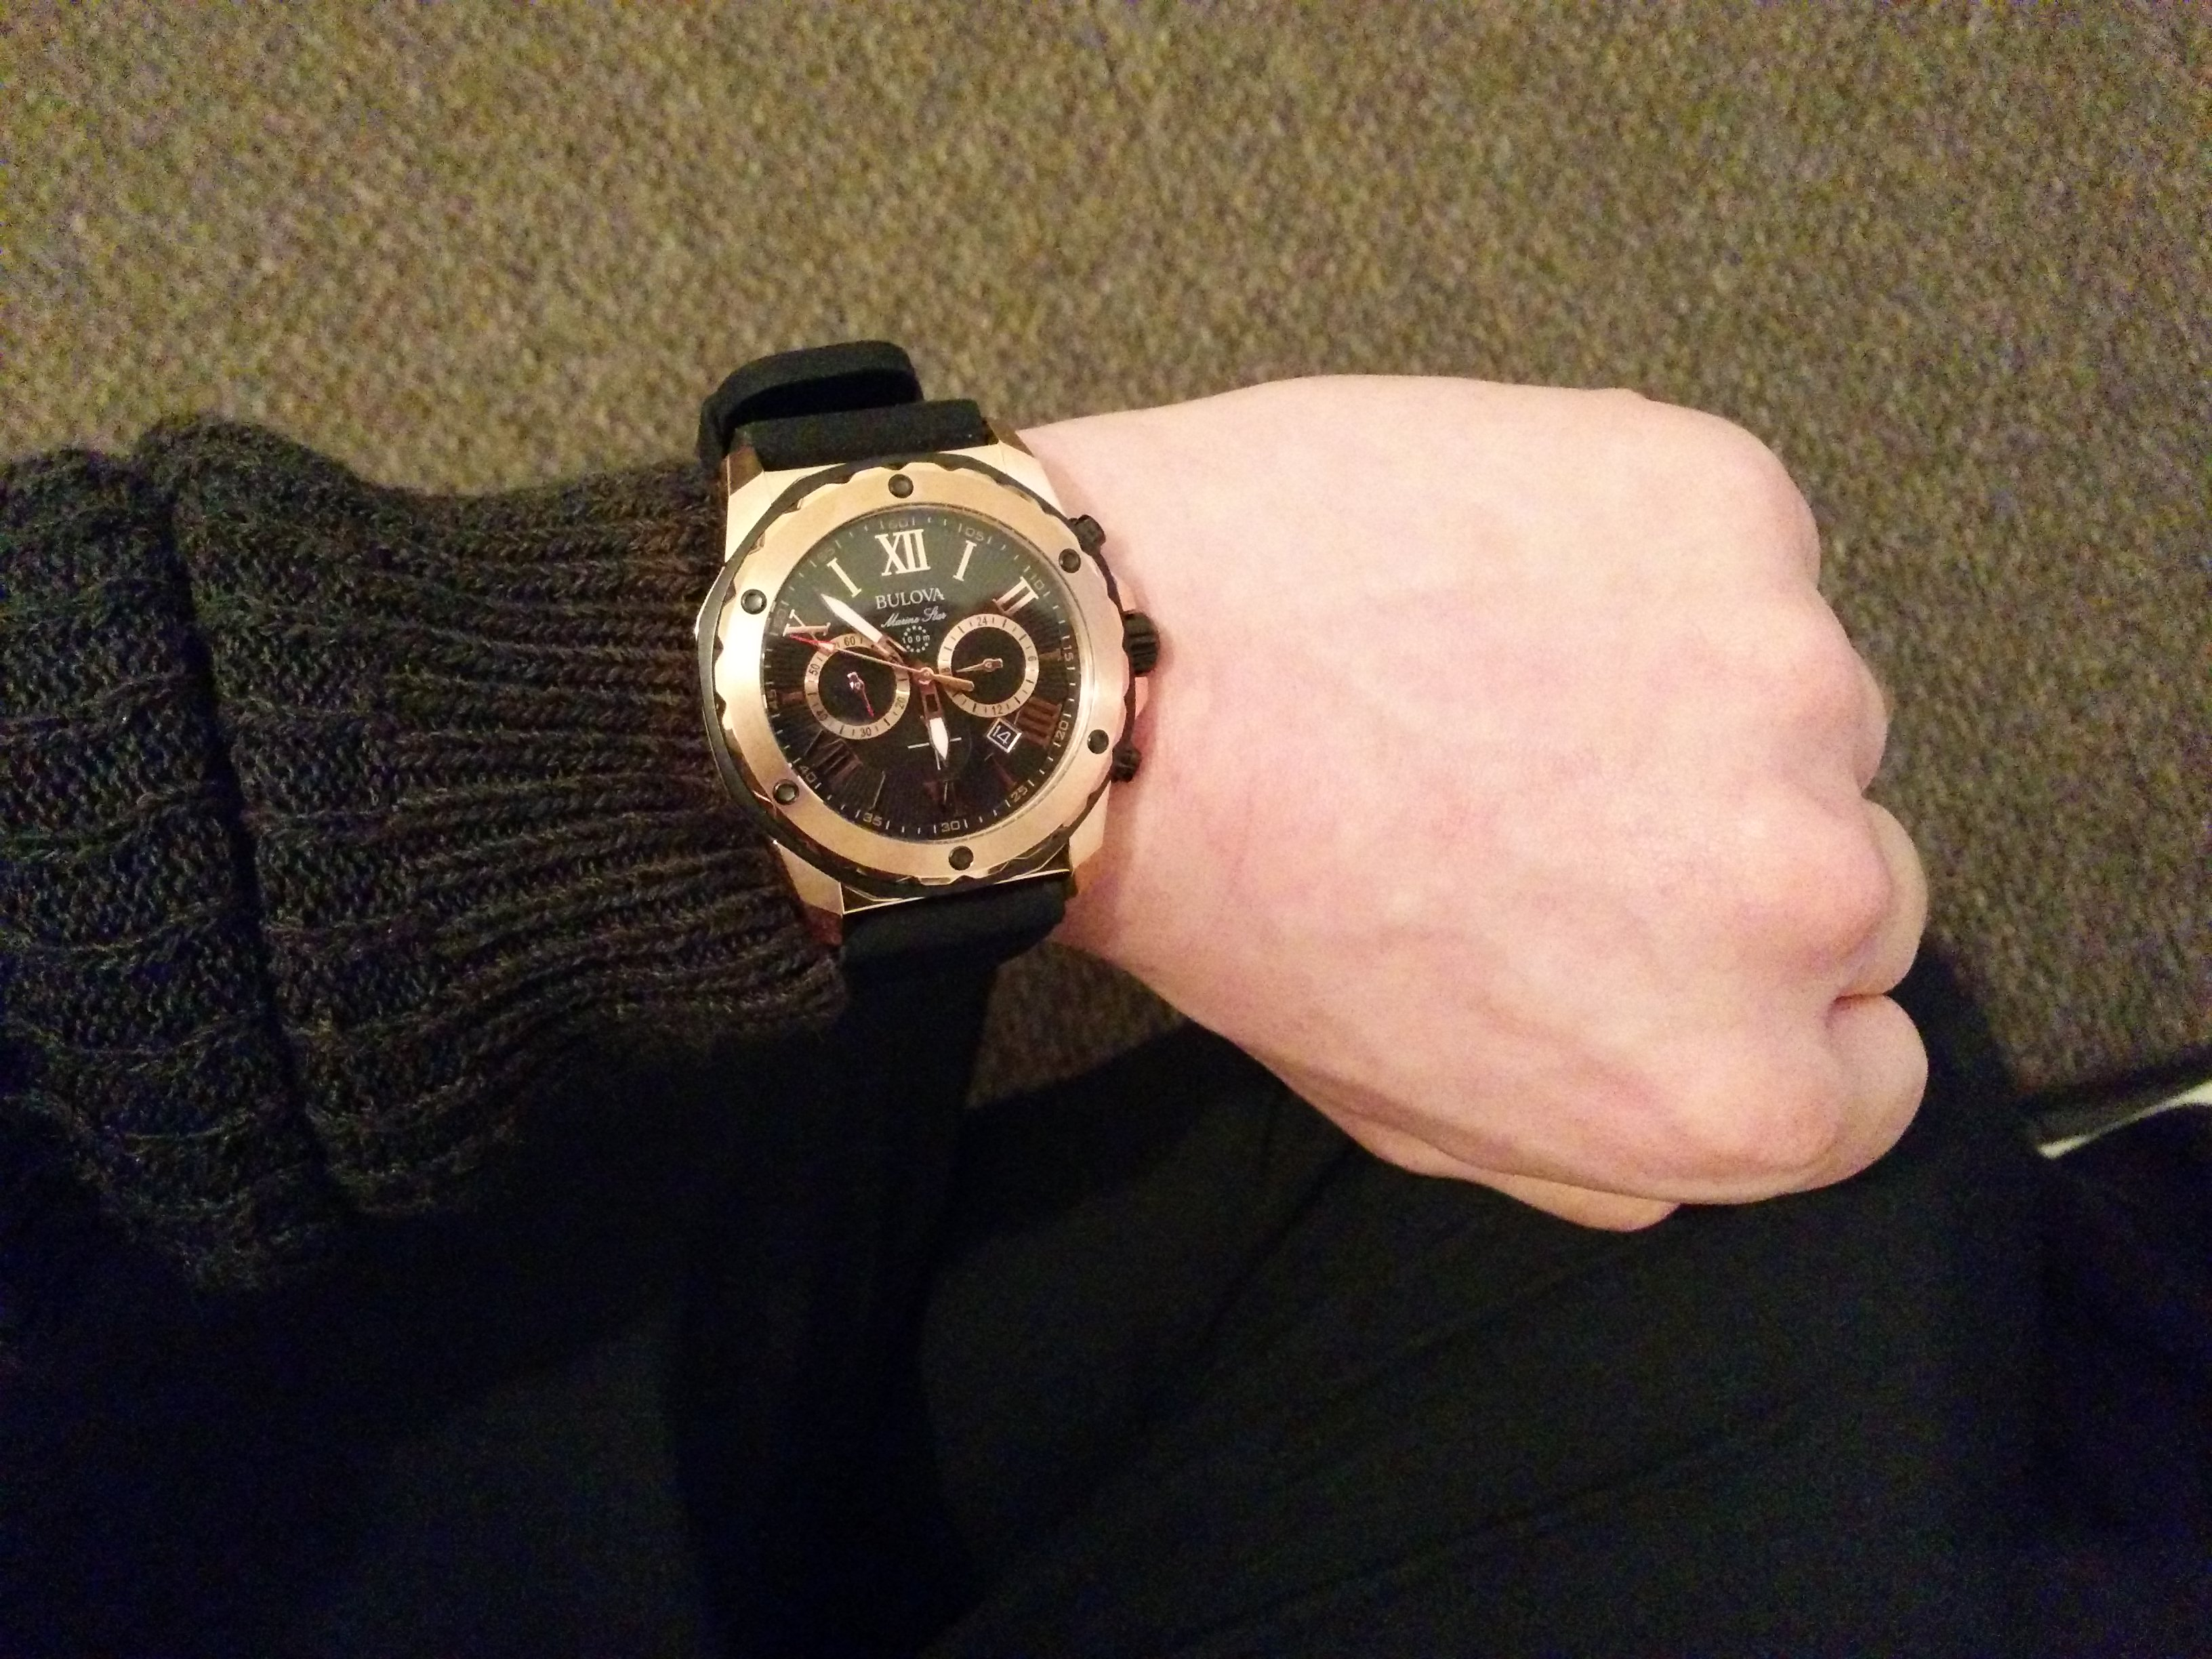 1971ca962 Pictures dont do justice to this masterpiece which lends itself exquisitely  to the rose gold and black contrast. Its intricate detail is testament to  ...